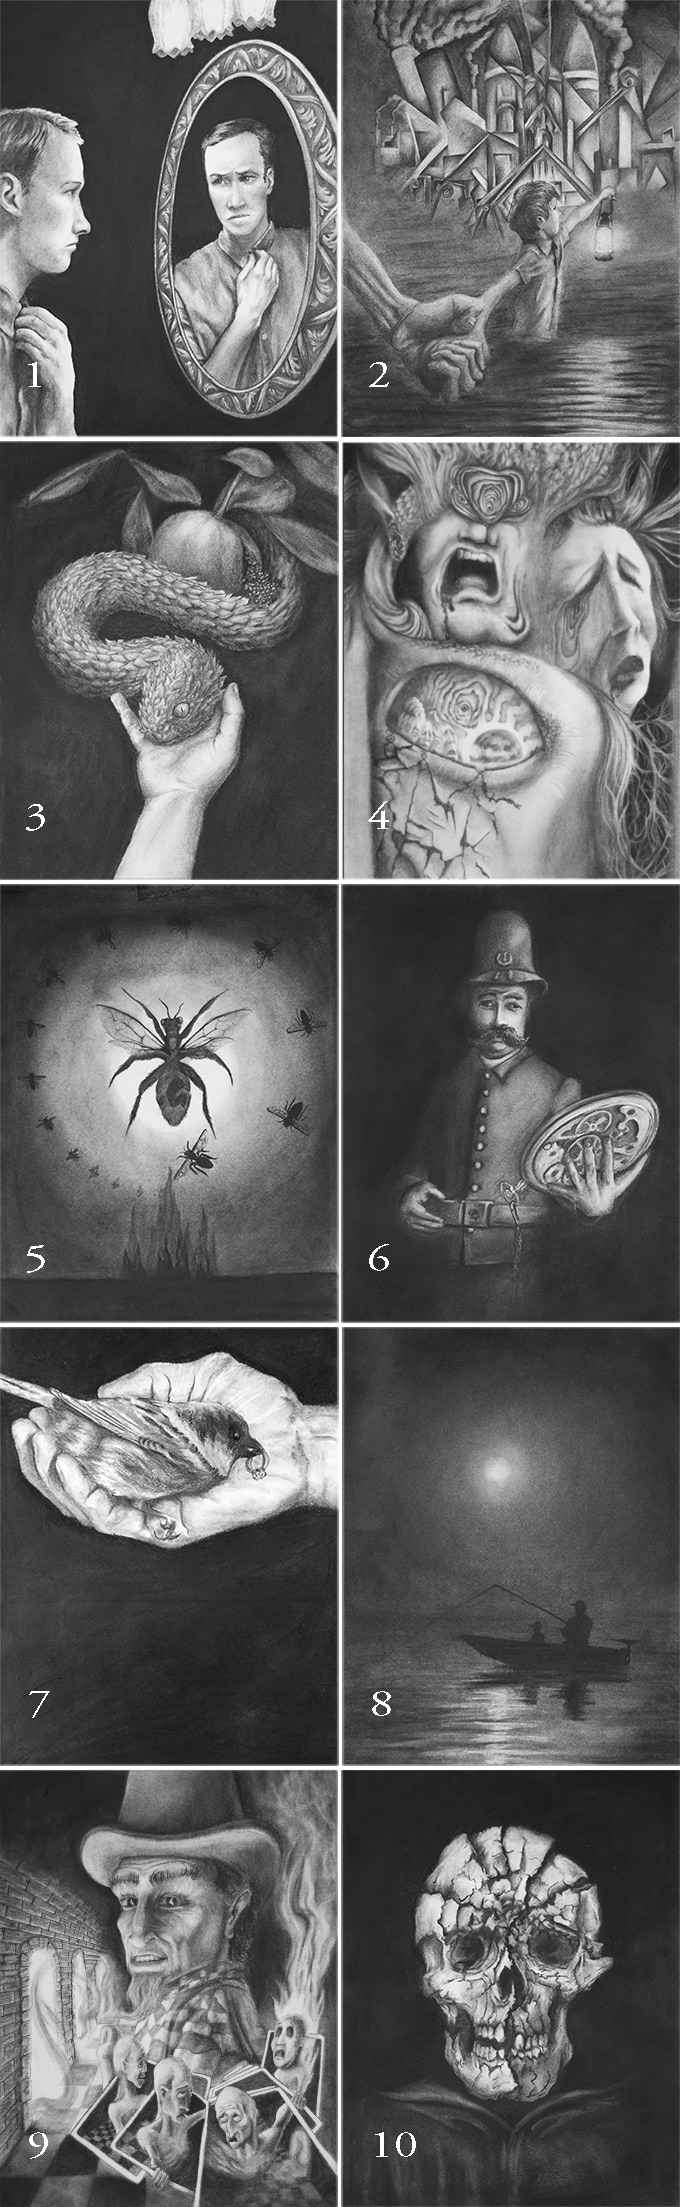 These images are available individually in the ORIGINAL CHARCOAL ILLUSTRATIONS package. Limit: 10